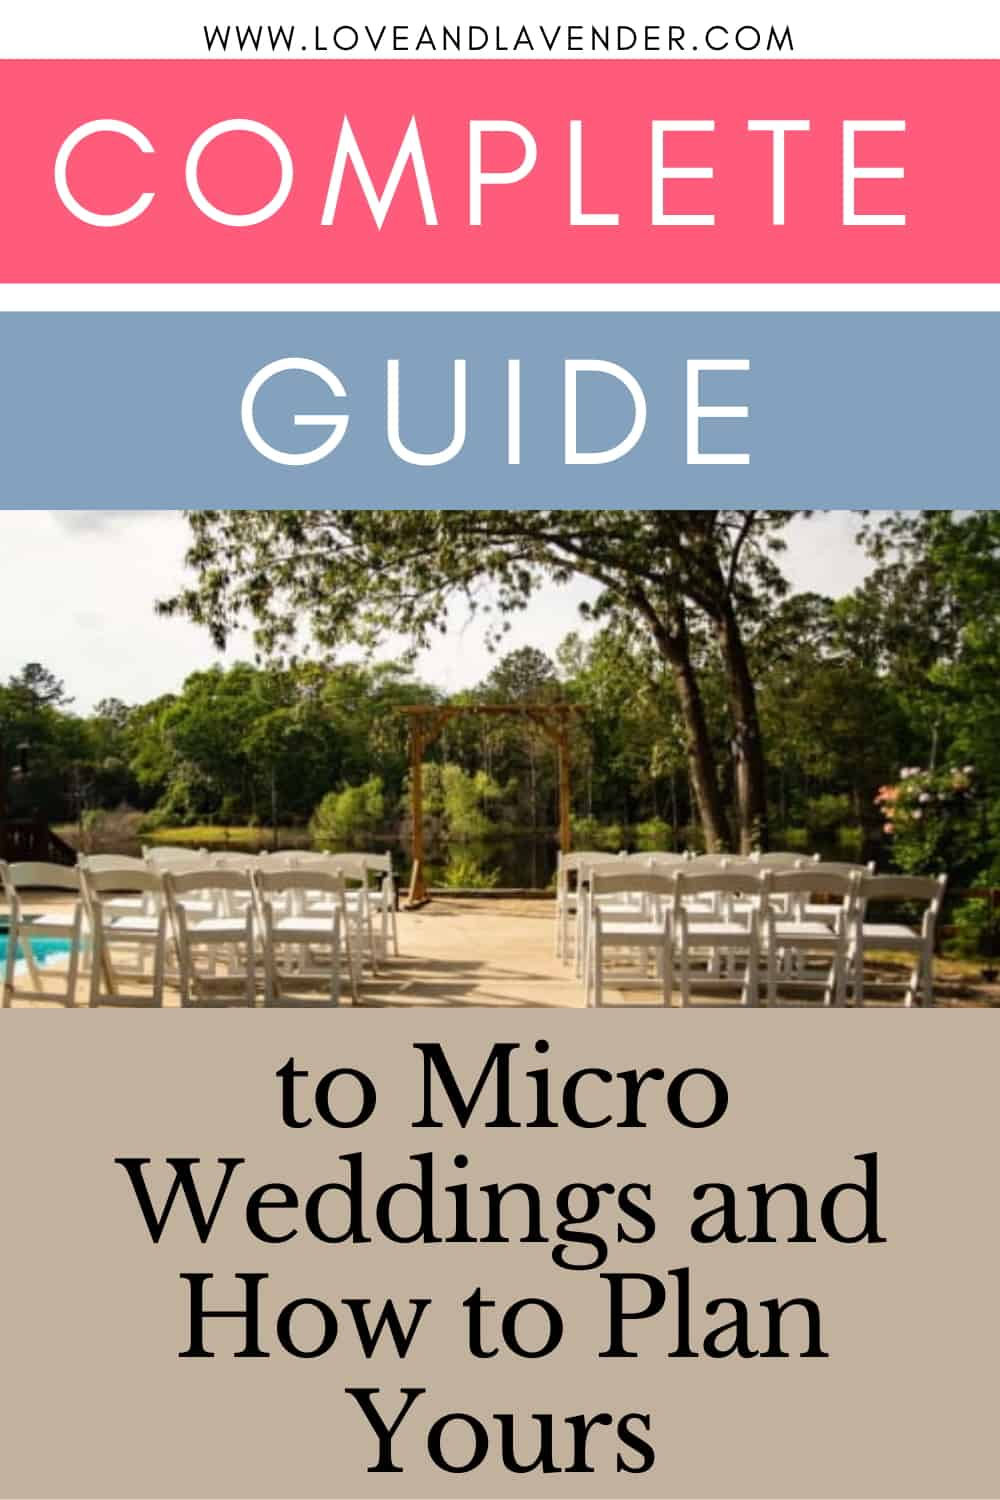 pinterest pin - guide to microweddings